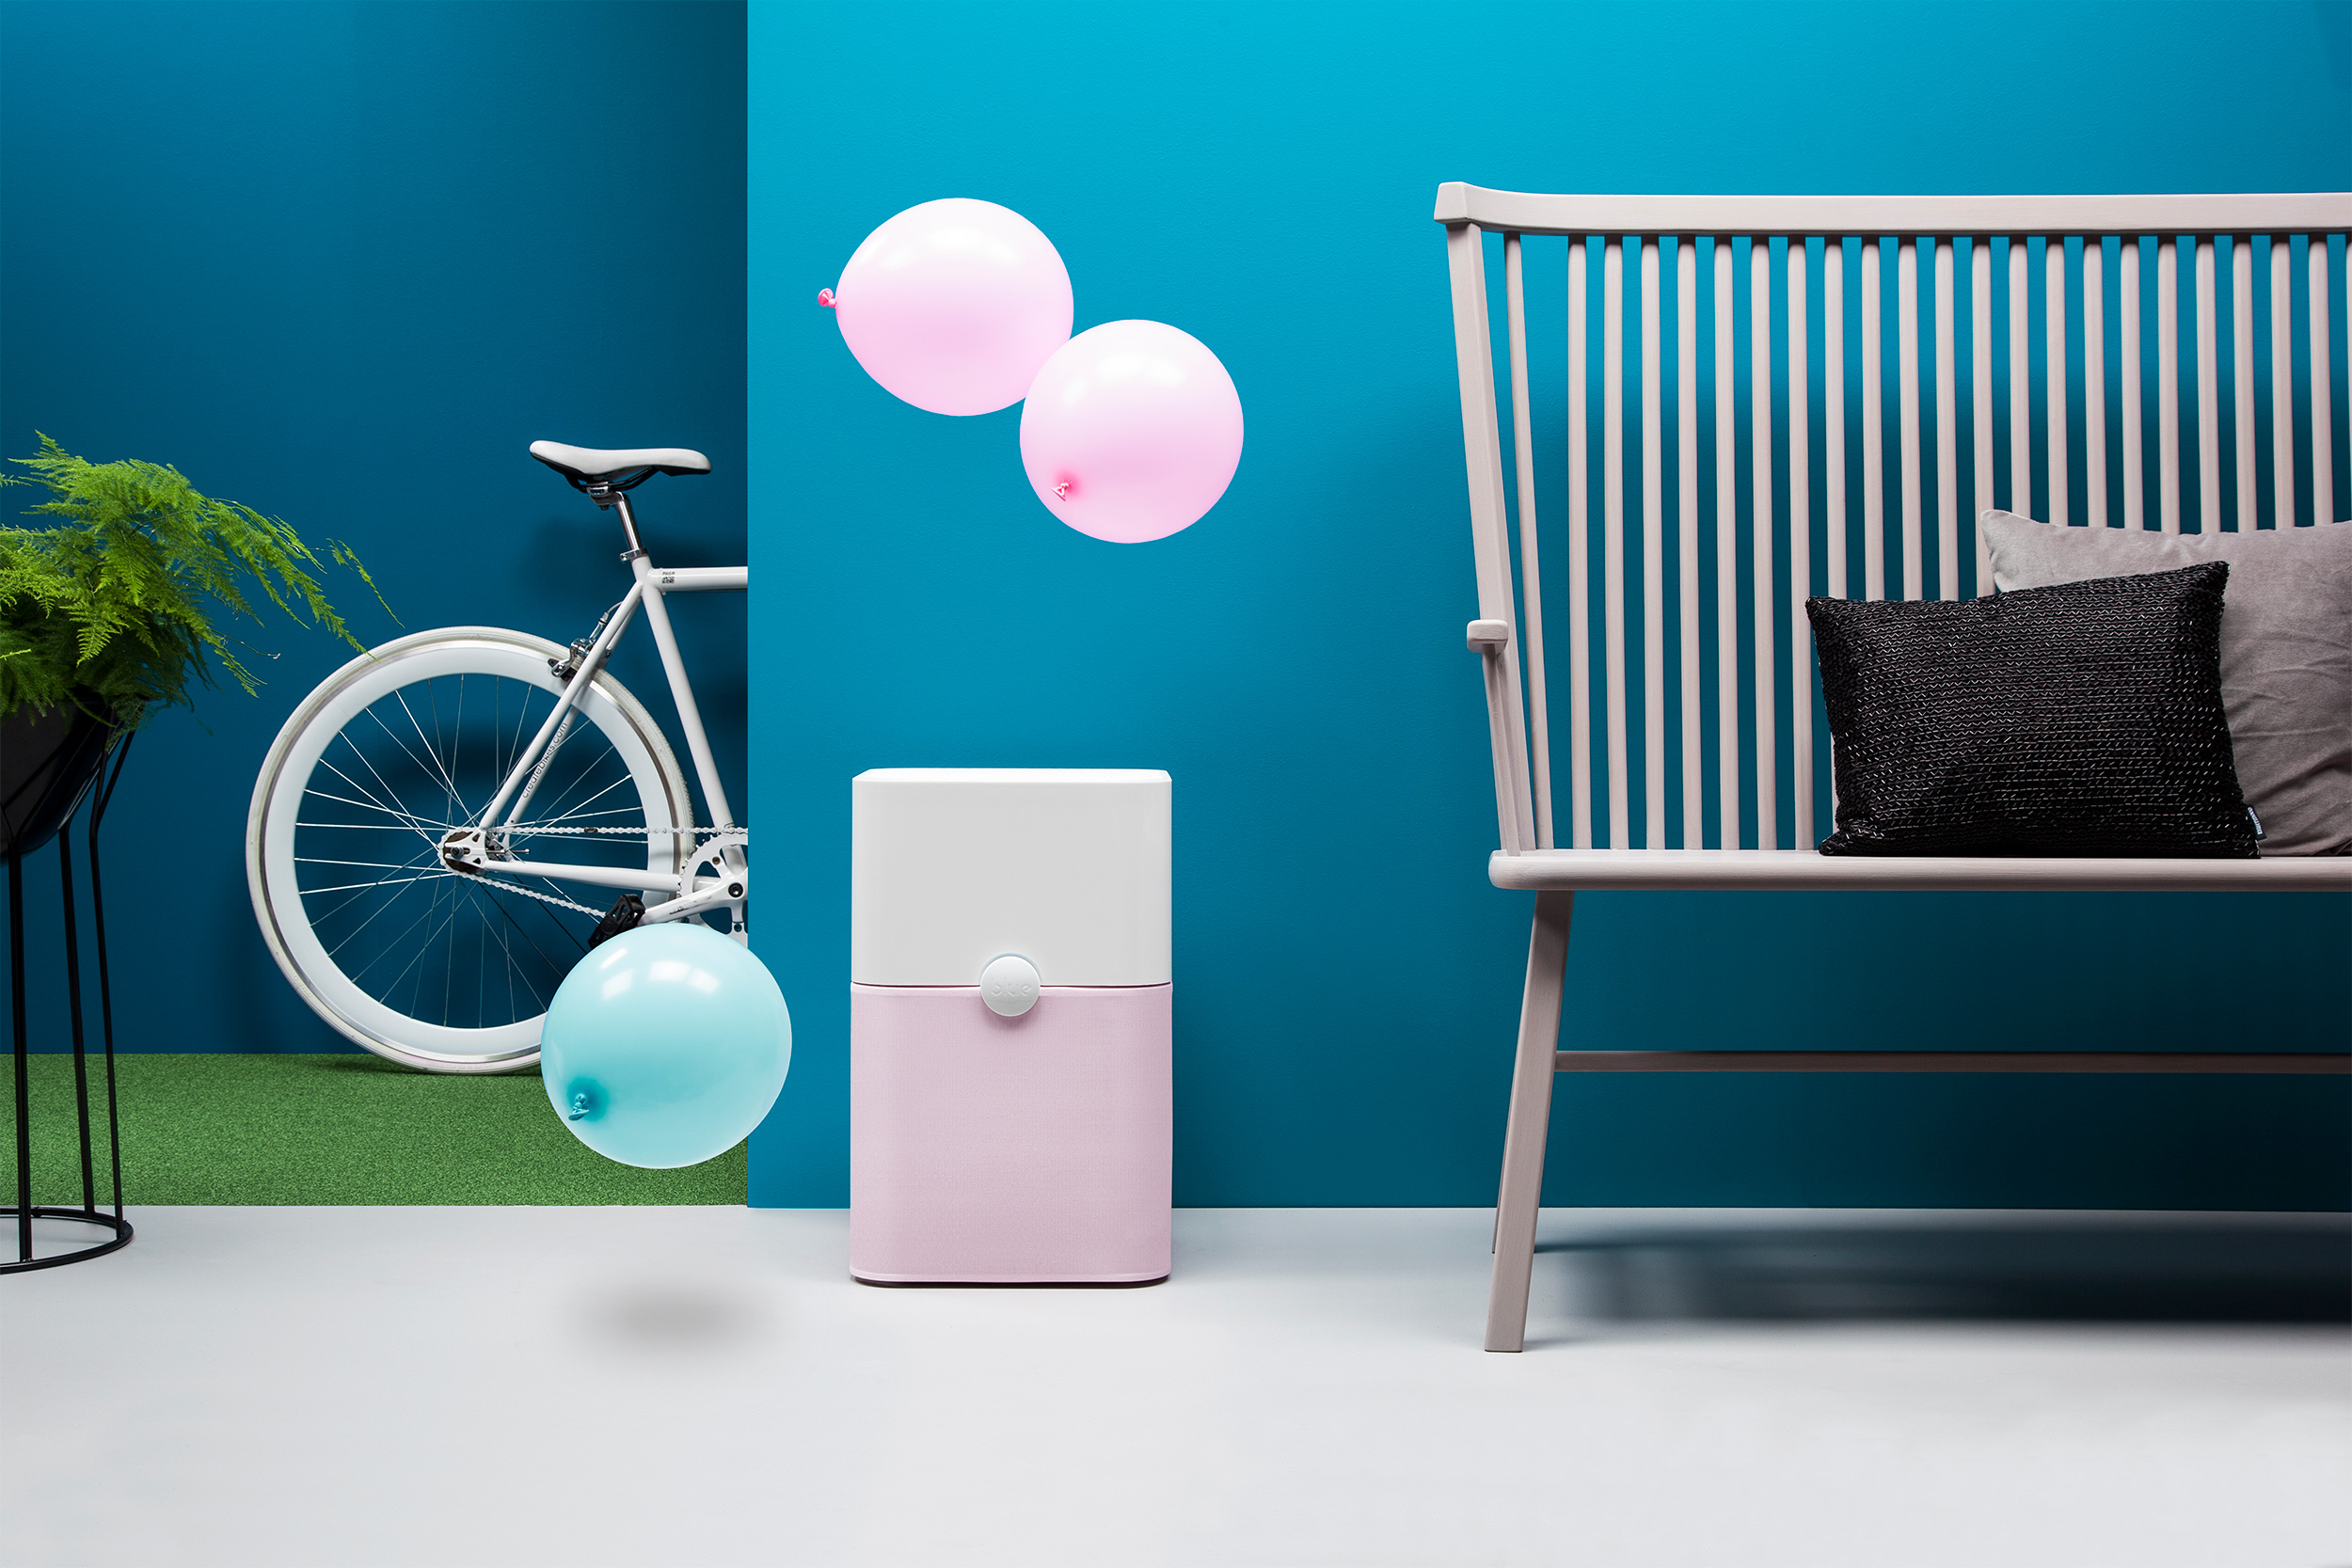 Blueair  Letting more people breathe clean air  Design strategy, Industrial design, UX, Mechanical engineering, Design for manufacturing